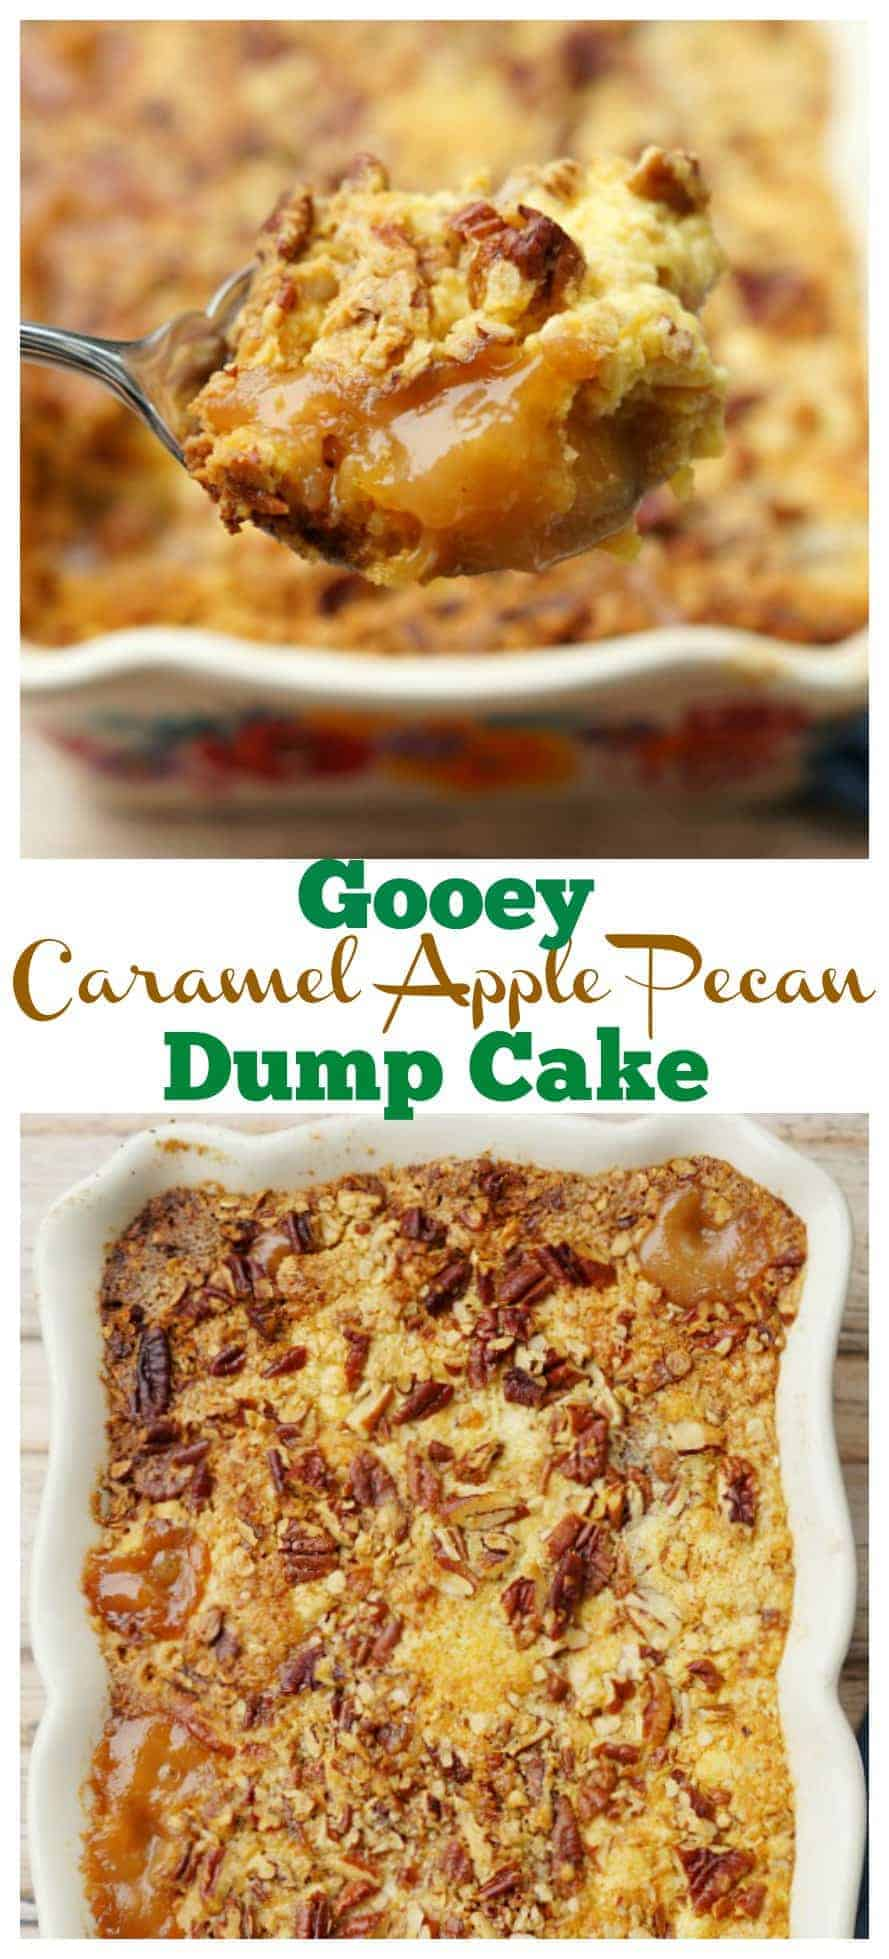 This gooey Caramel Apple Dump Cake Recipe with delicious pecans is light on ingredients but big on flavor! This easy dessert recipe will be the only apple recipe you need all fall long!